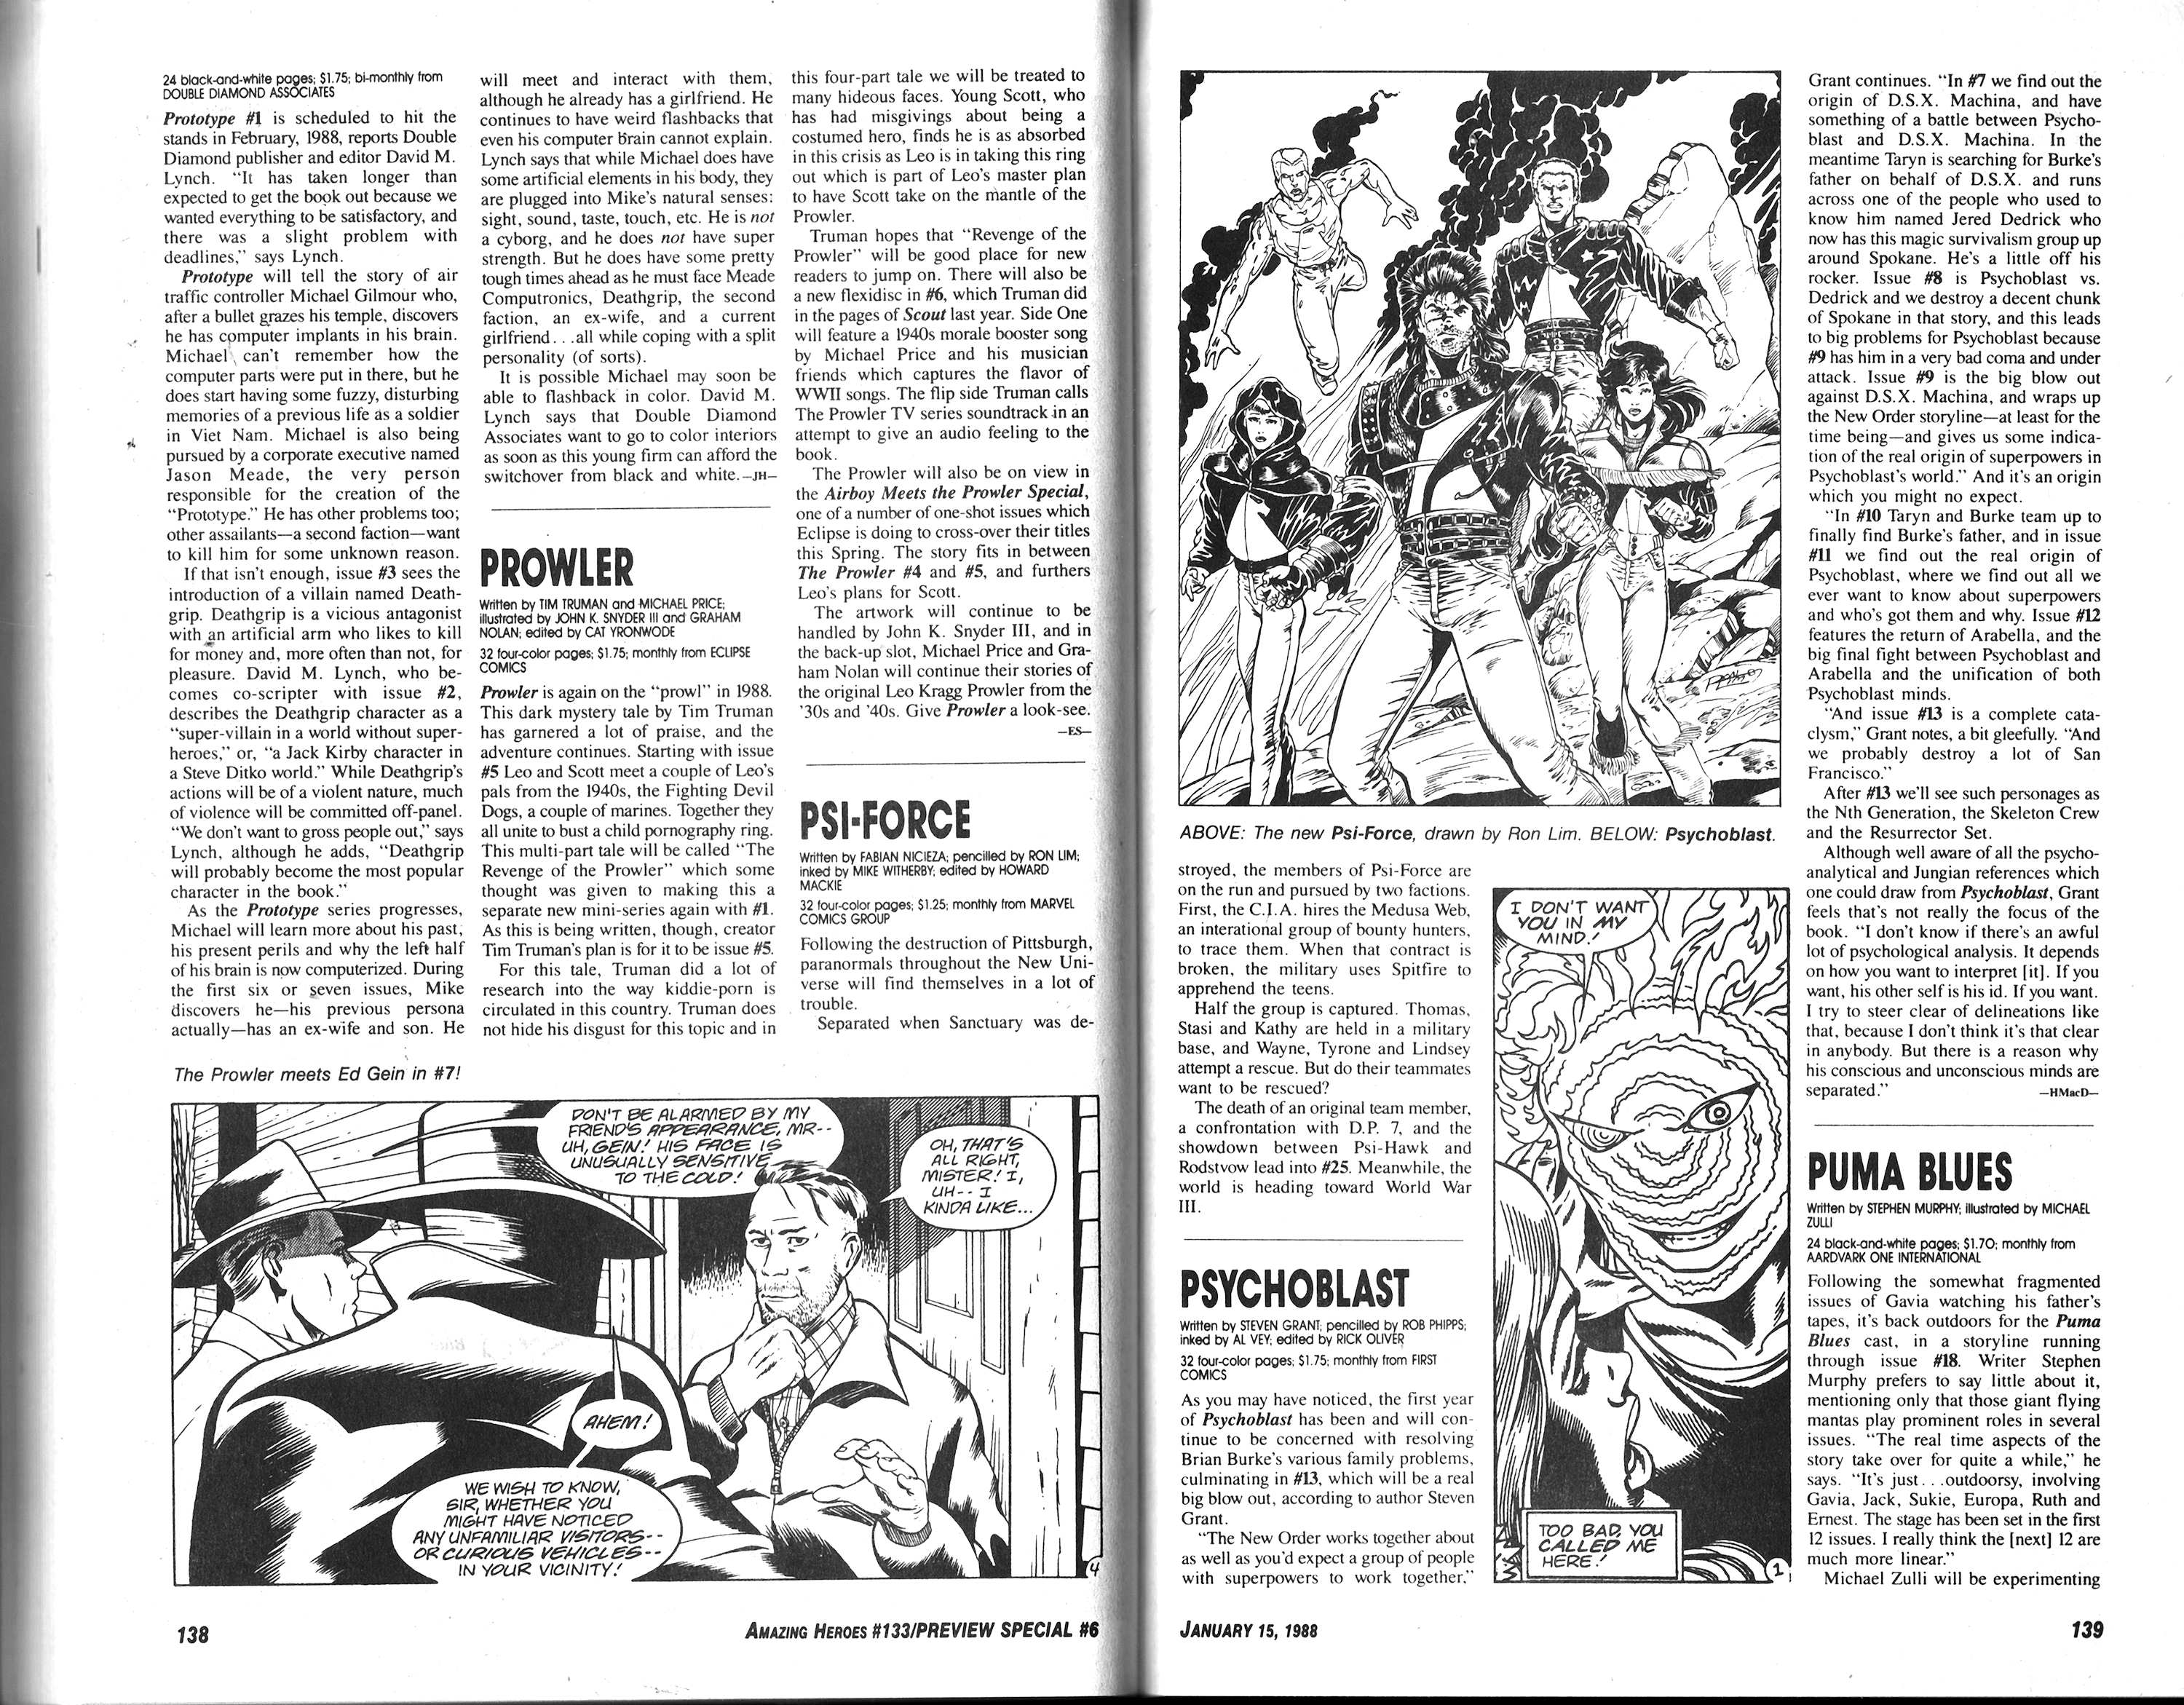 Read online Amazing Heroes comic -  Issue #133 - 71